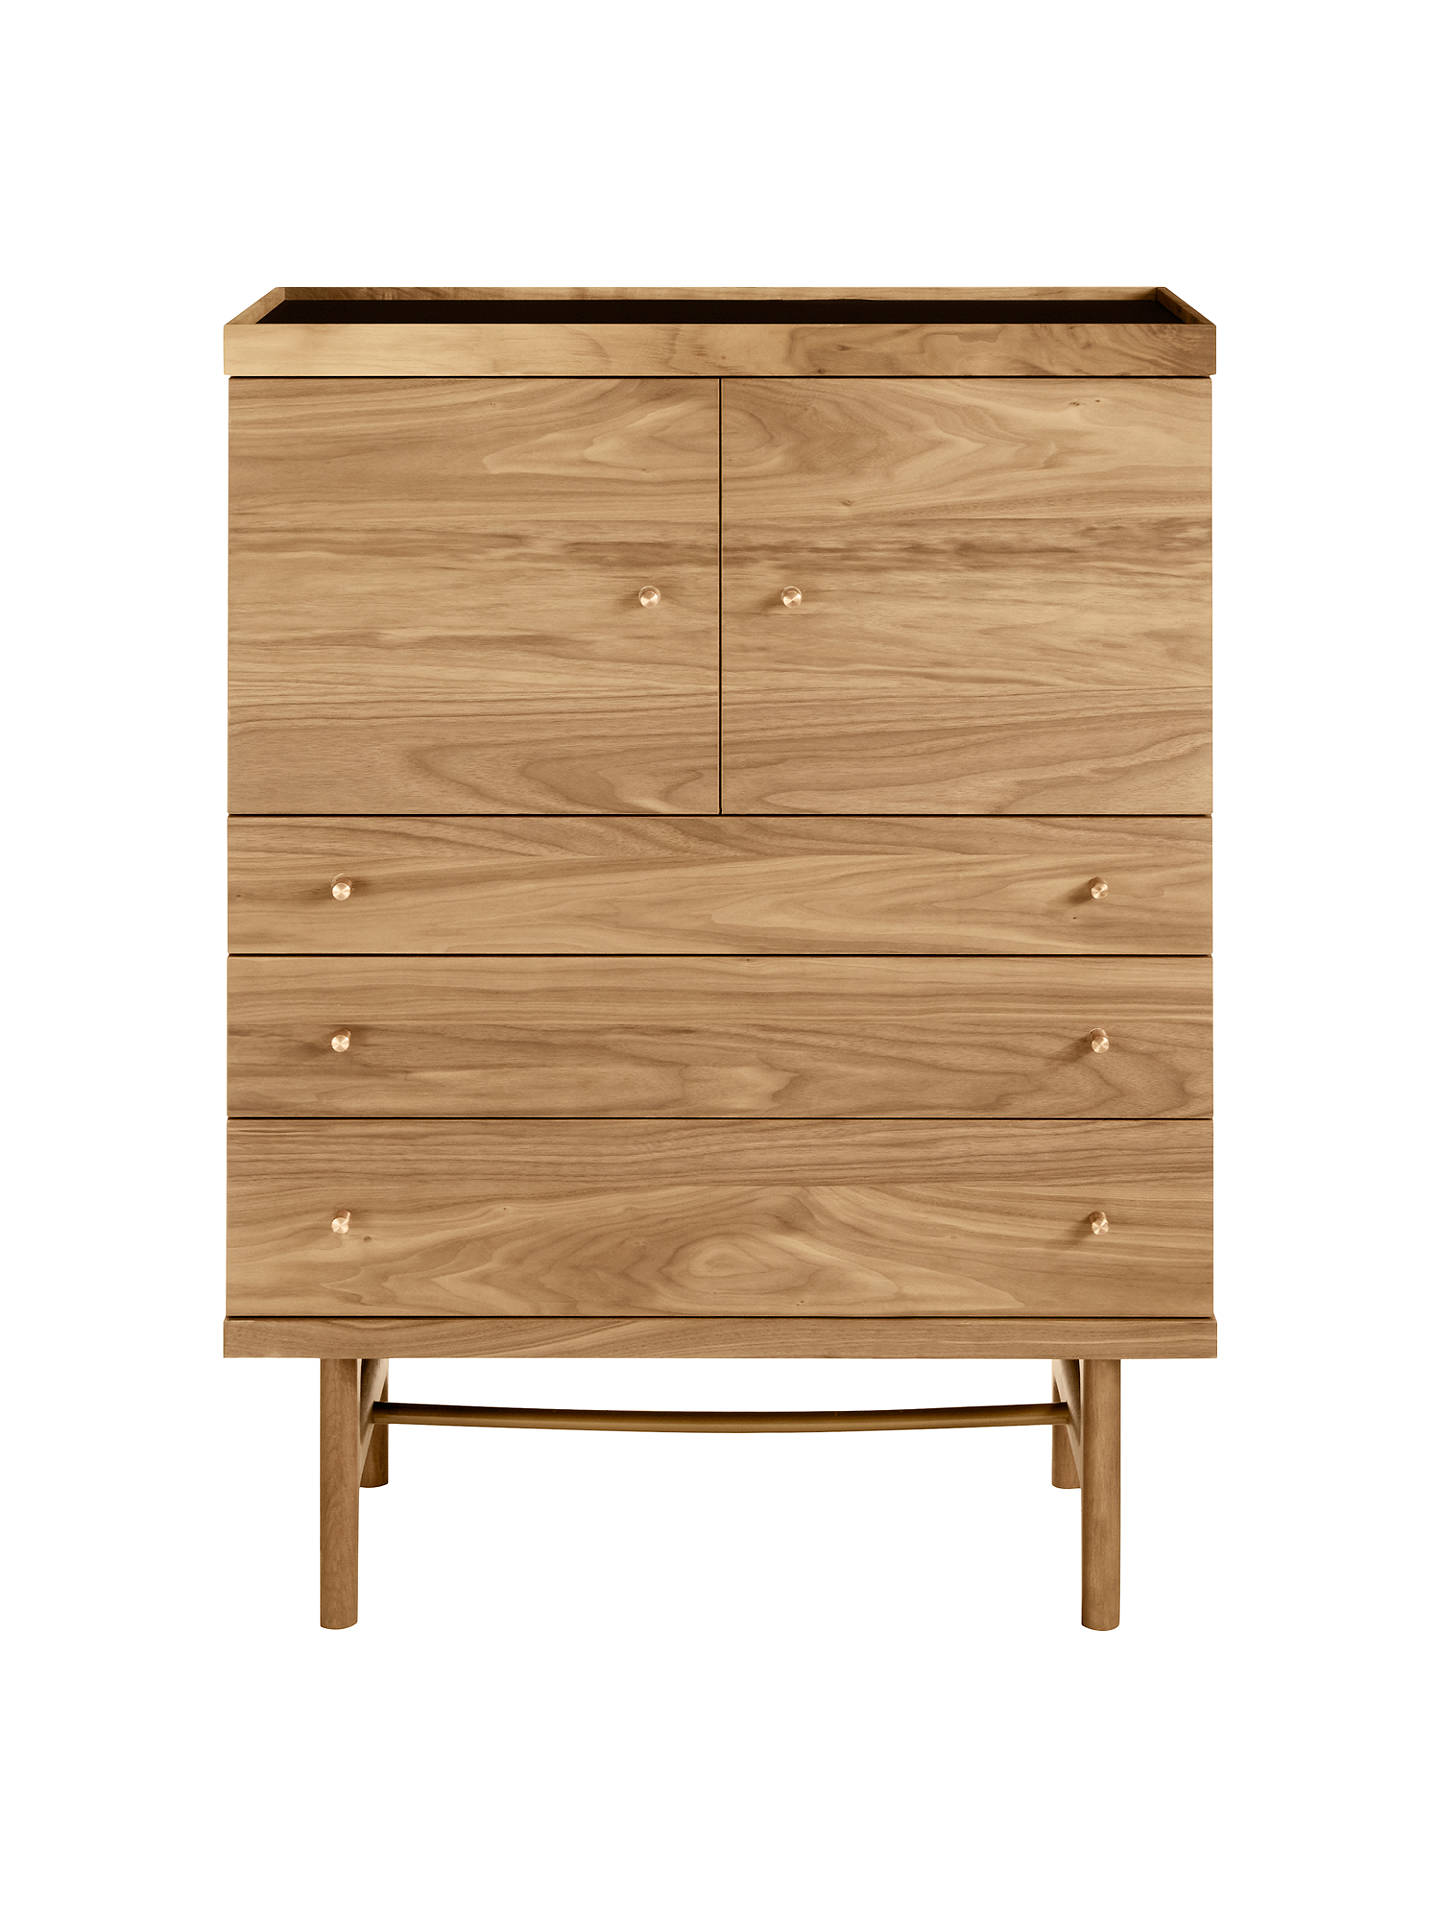 Design project by john lewis highboard at john lewis partners for John lewis home design service reviews